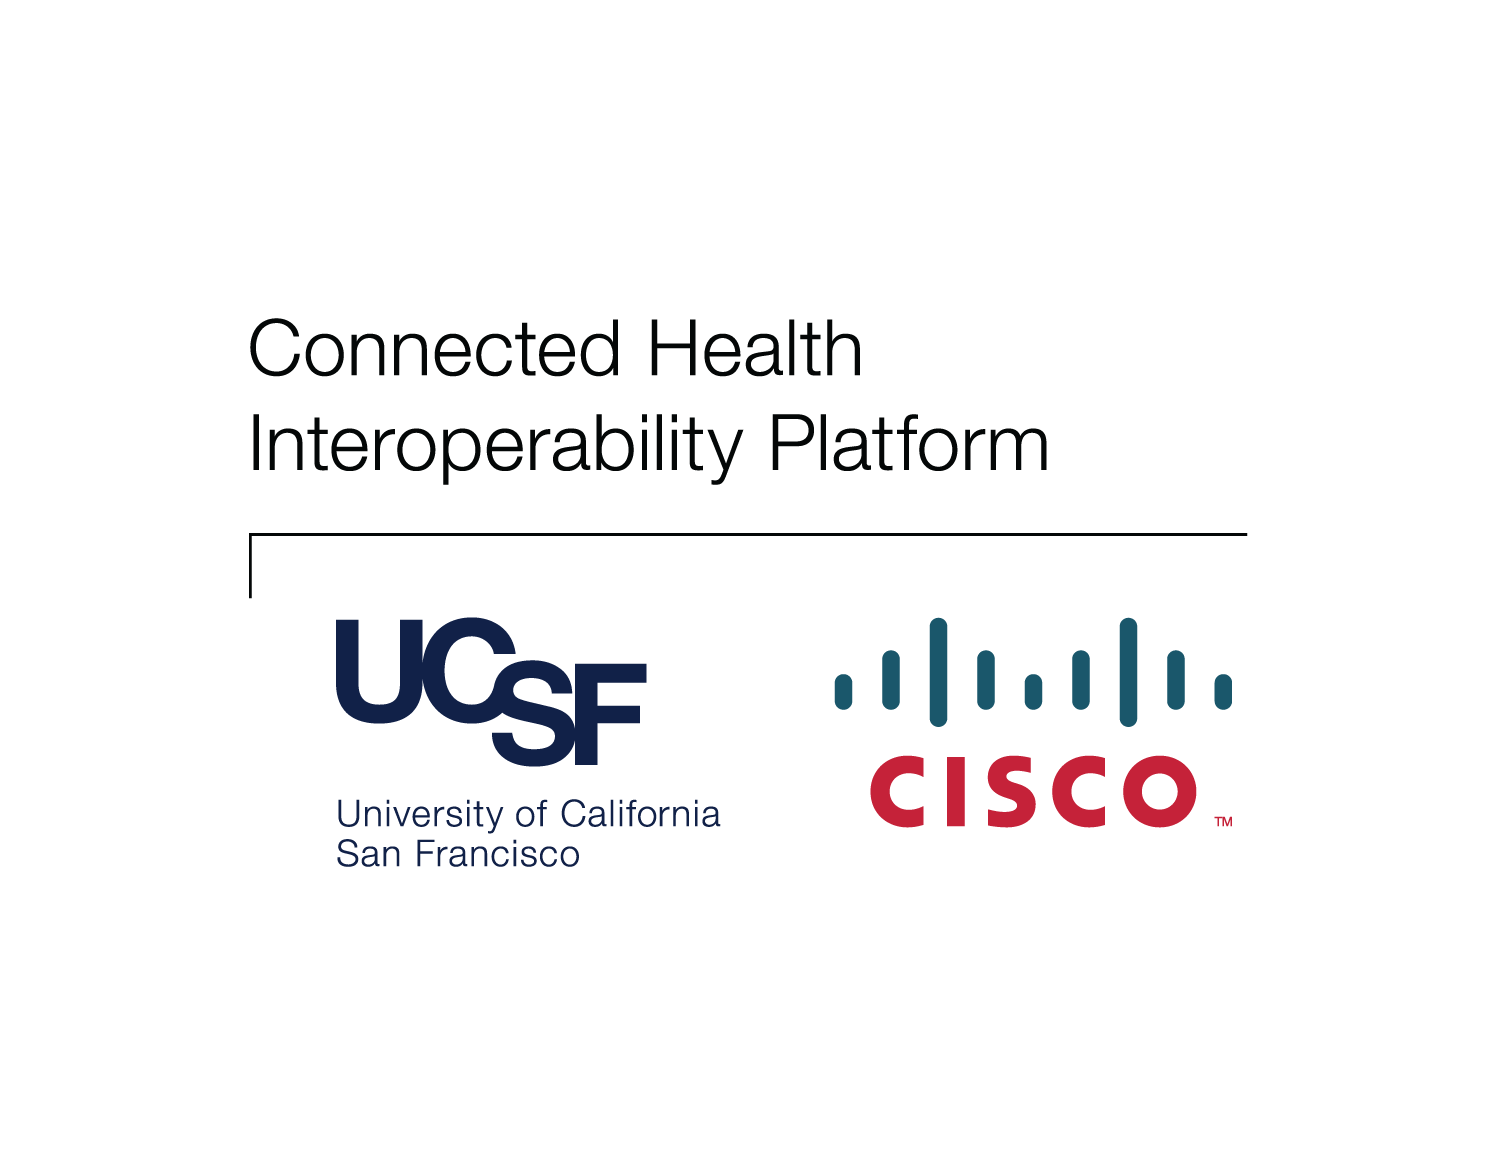 ucsf partnership example